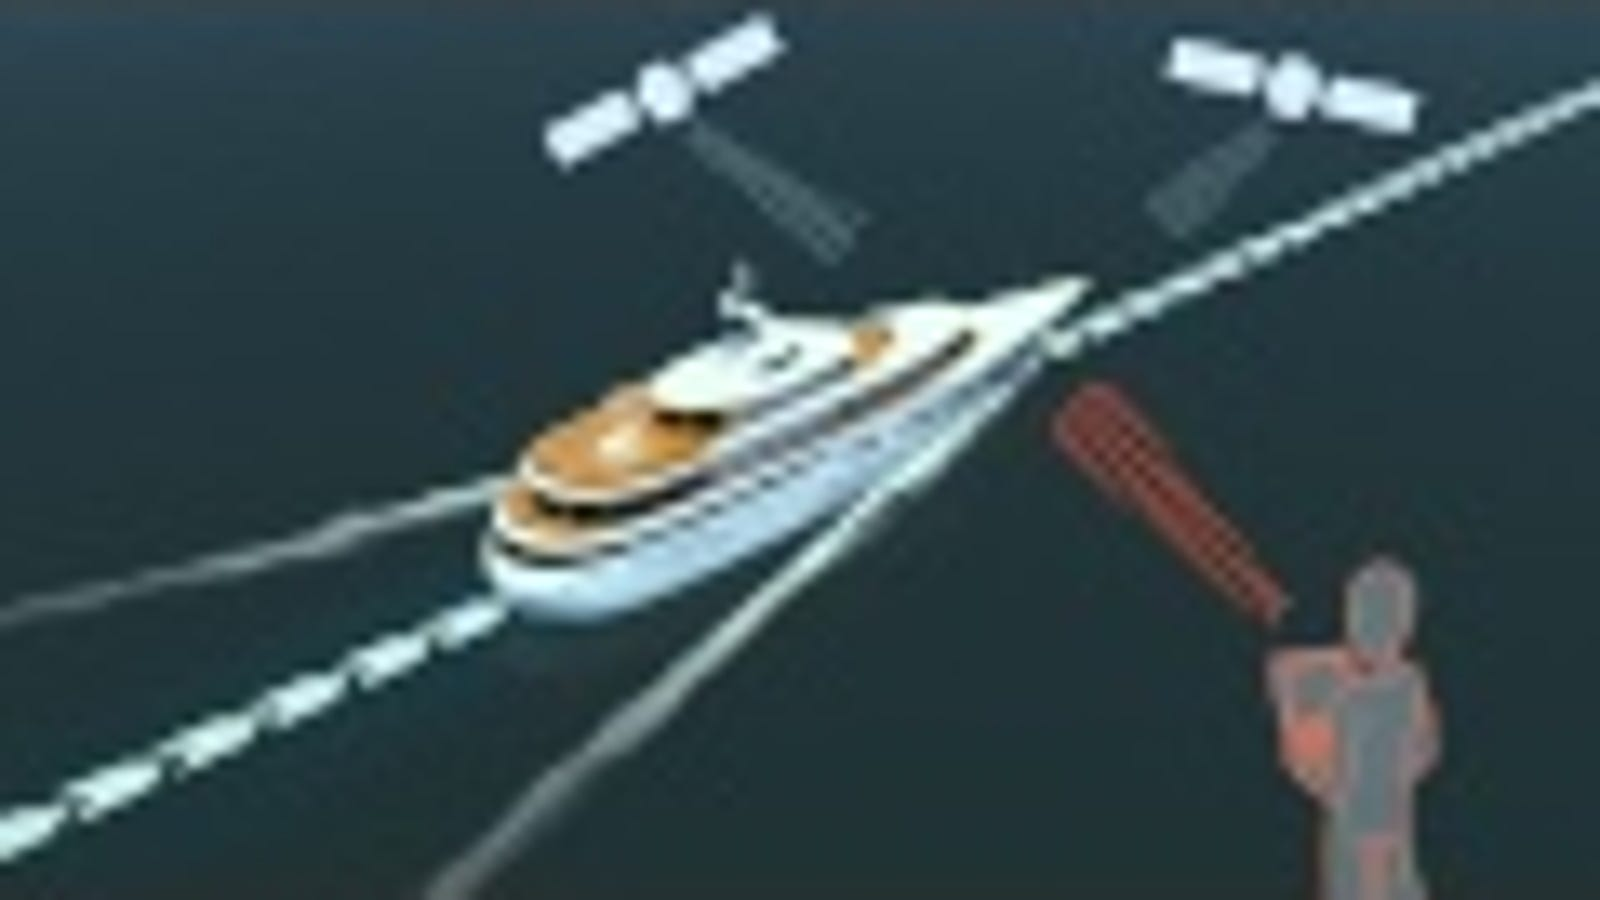 Students Take Control of $80 Million Superyacht Using Fake GPS Signals